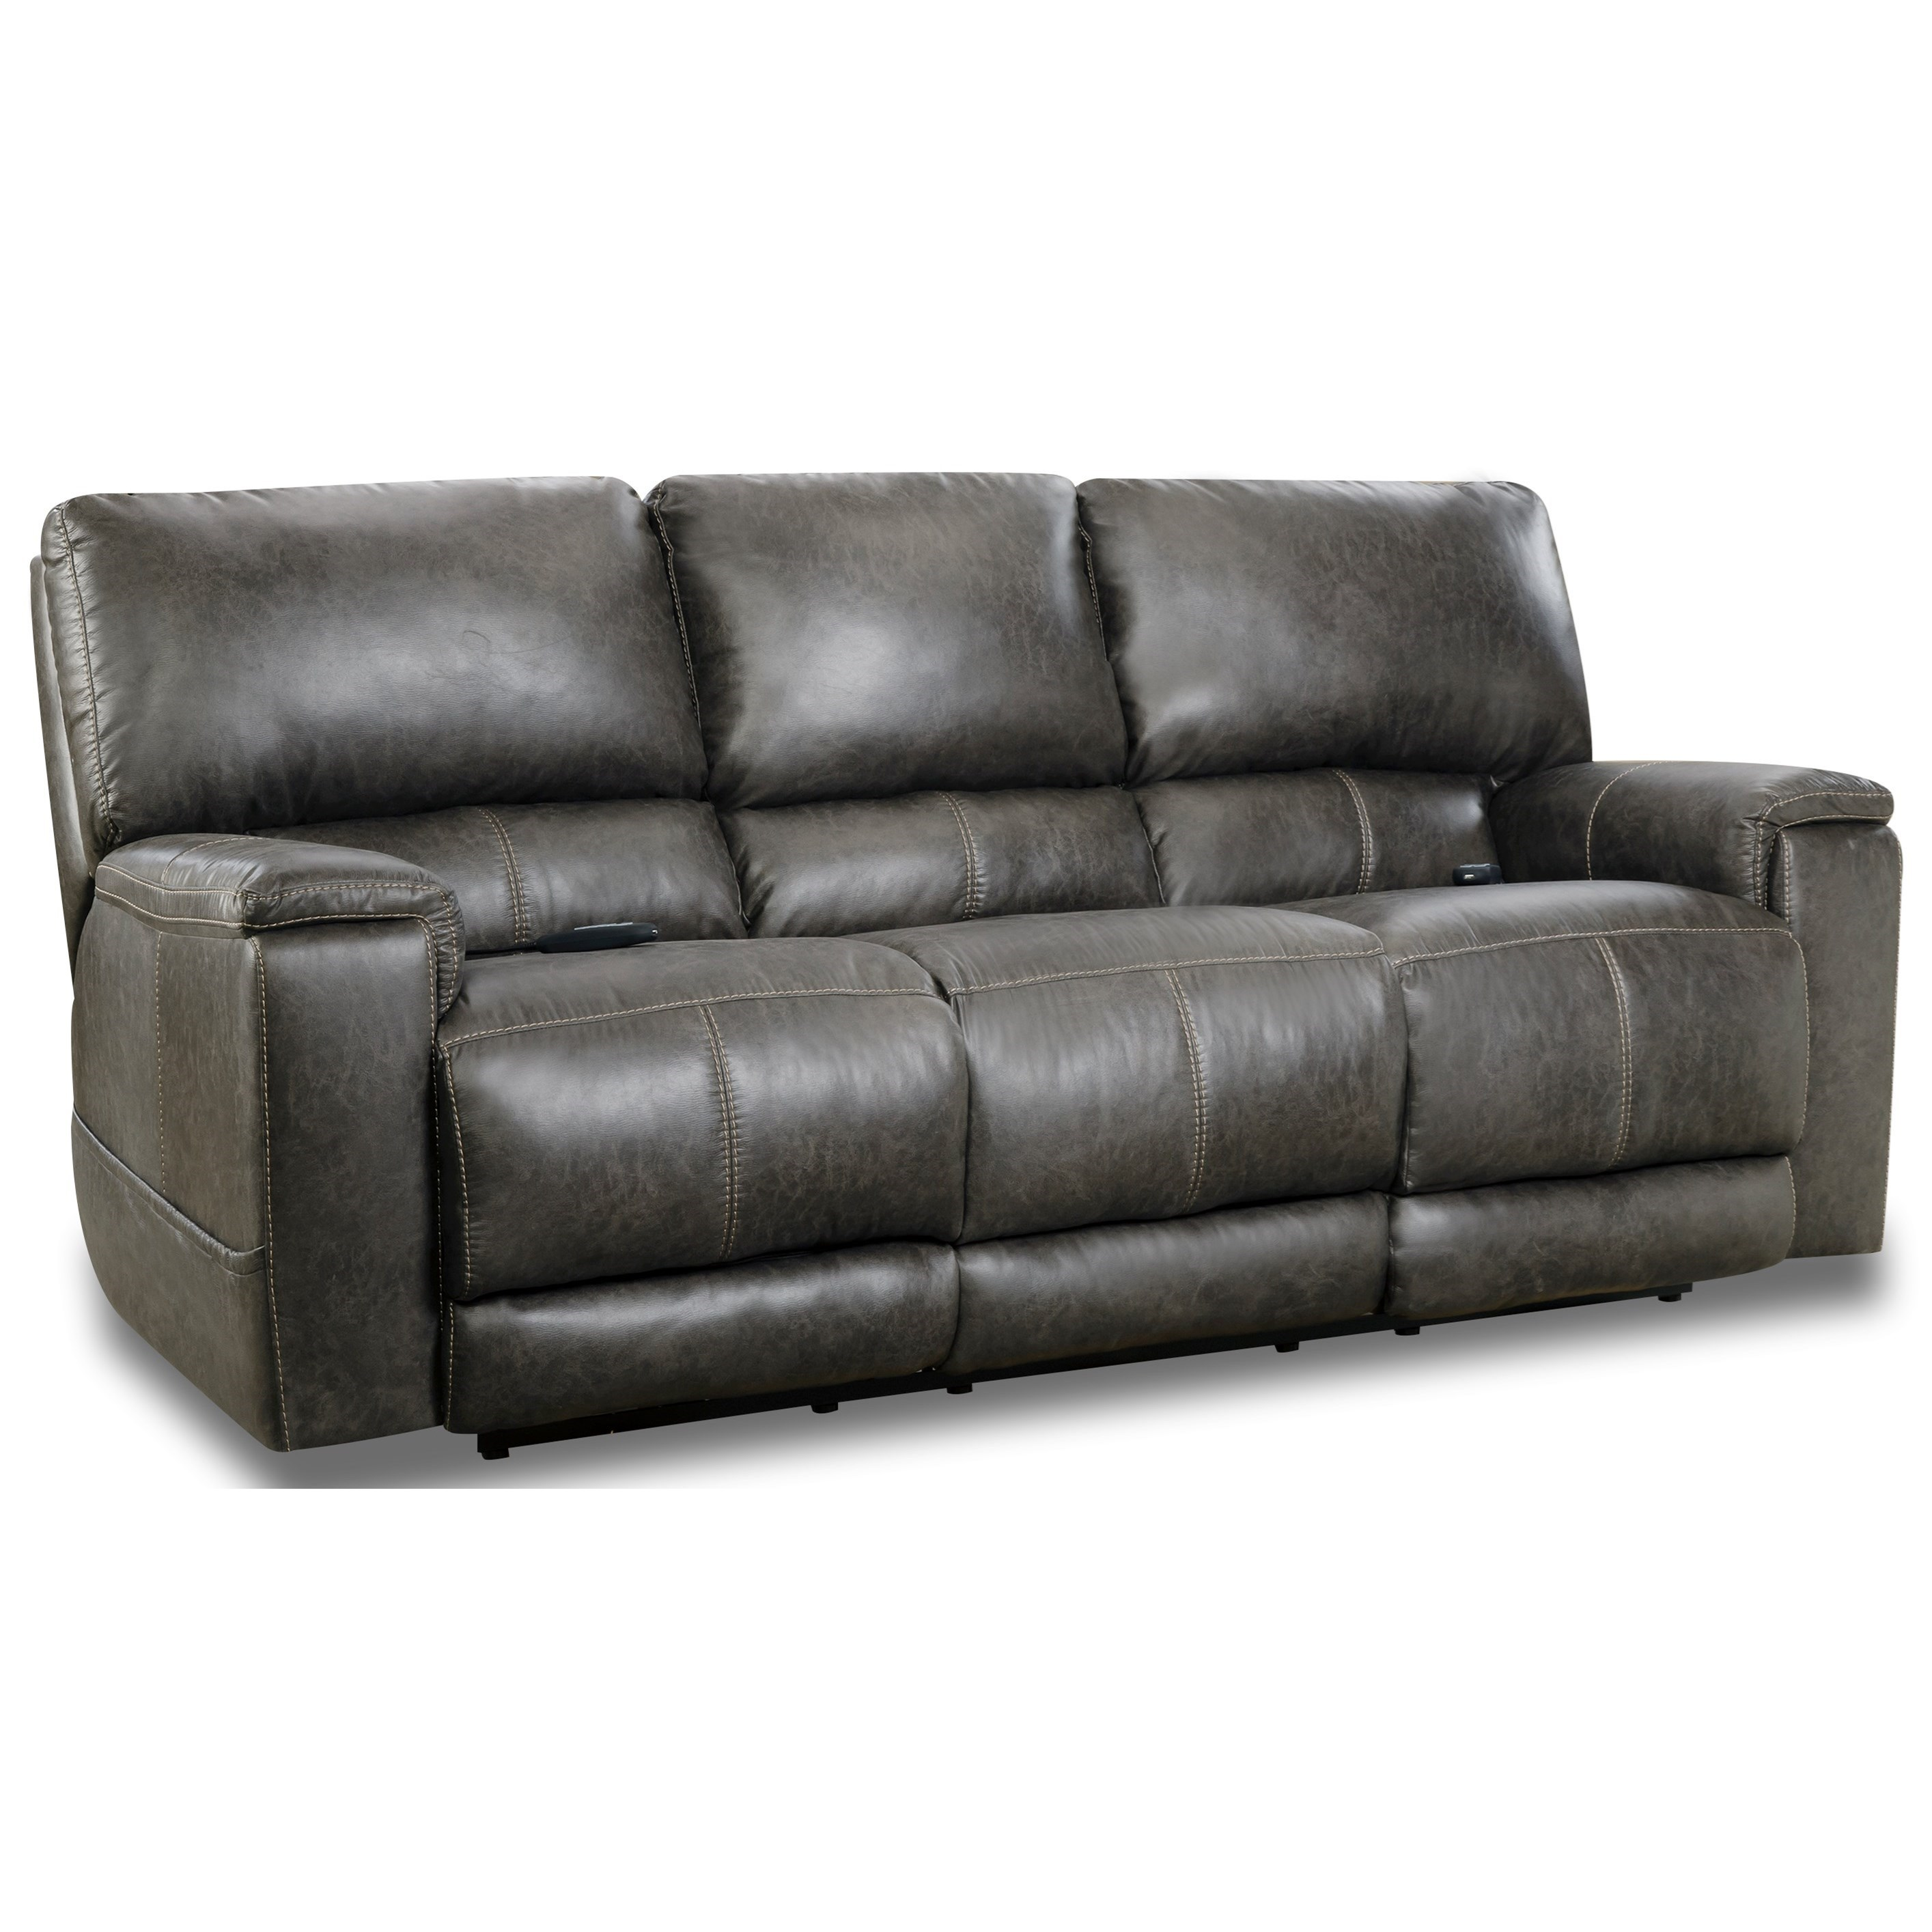 197 Collection Double Reclining Power Sofa  by HomeStretch at Bullard Furniture